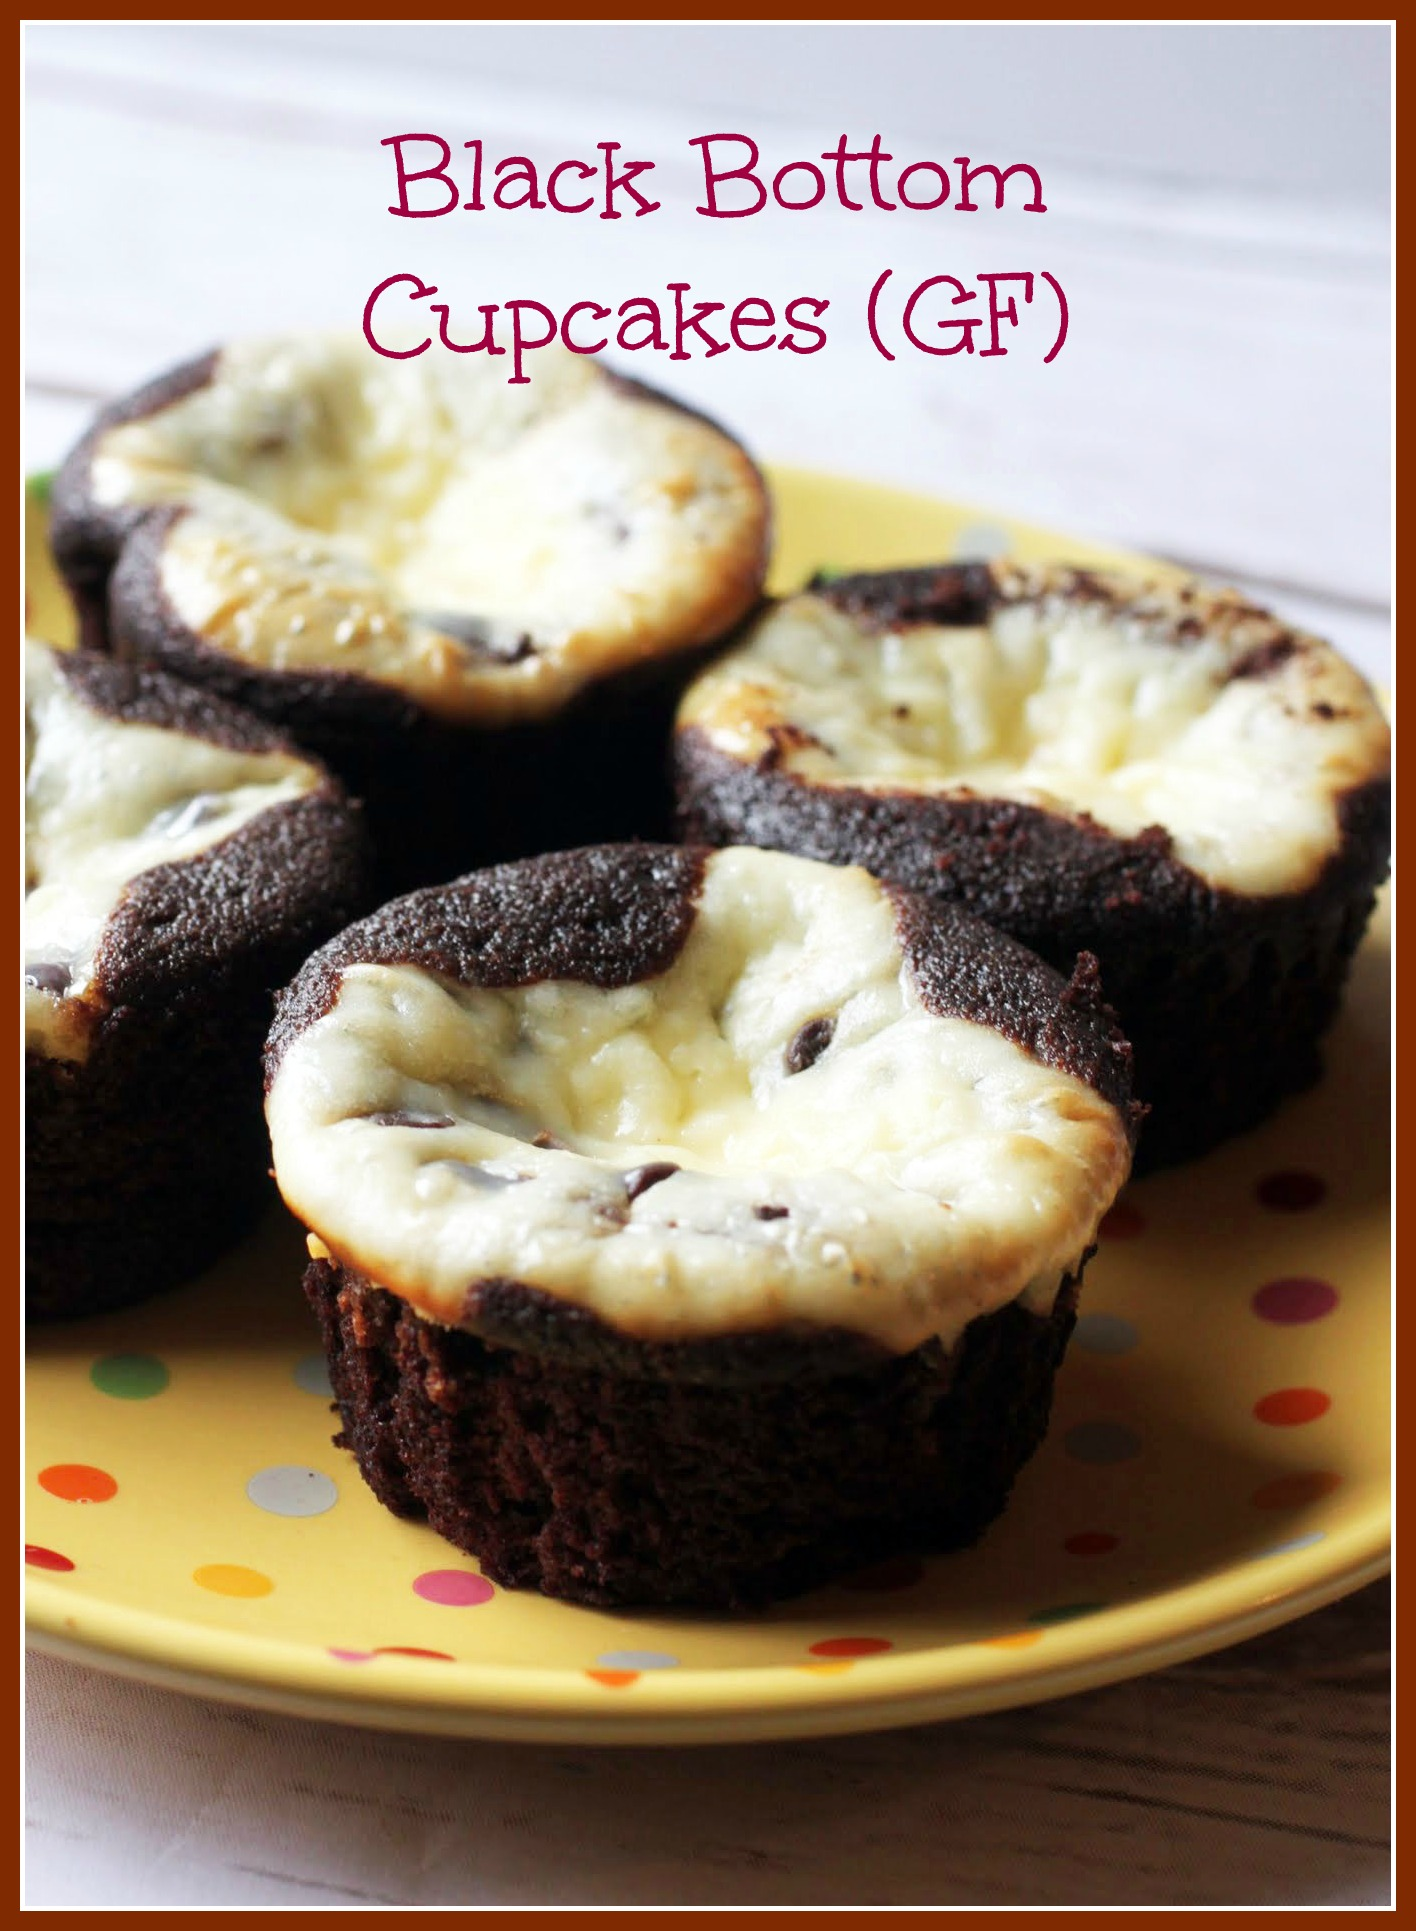 Black Bottom Cupcakes (GF)